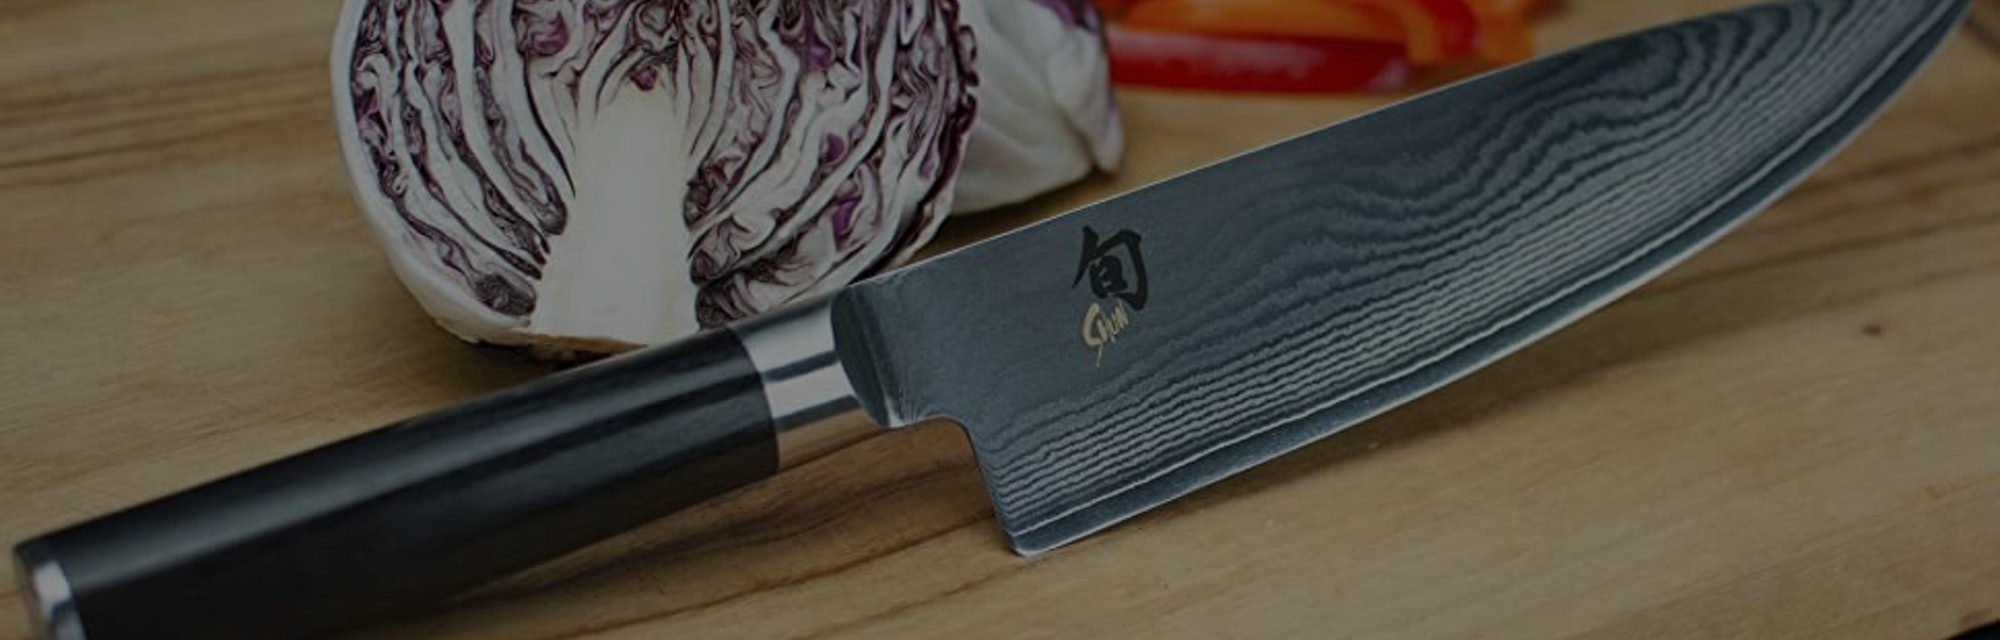 Shun Classic chef knife review